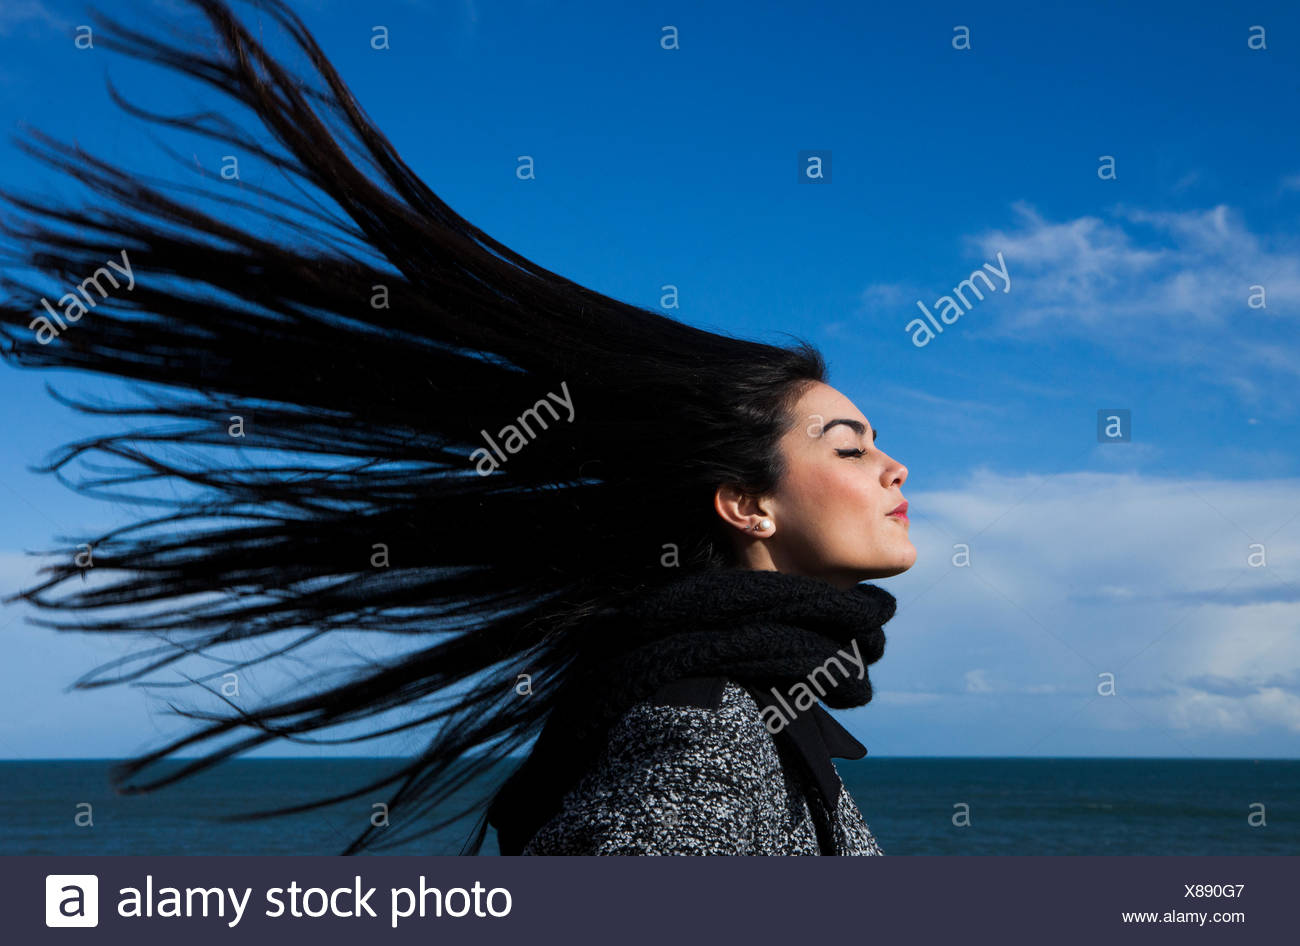 Young woman with hair blowing in the wind - Stock Image